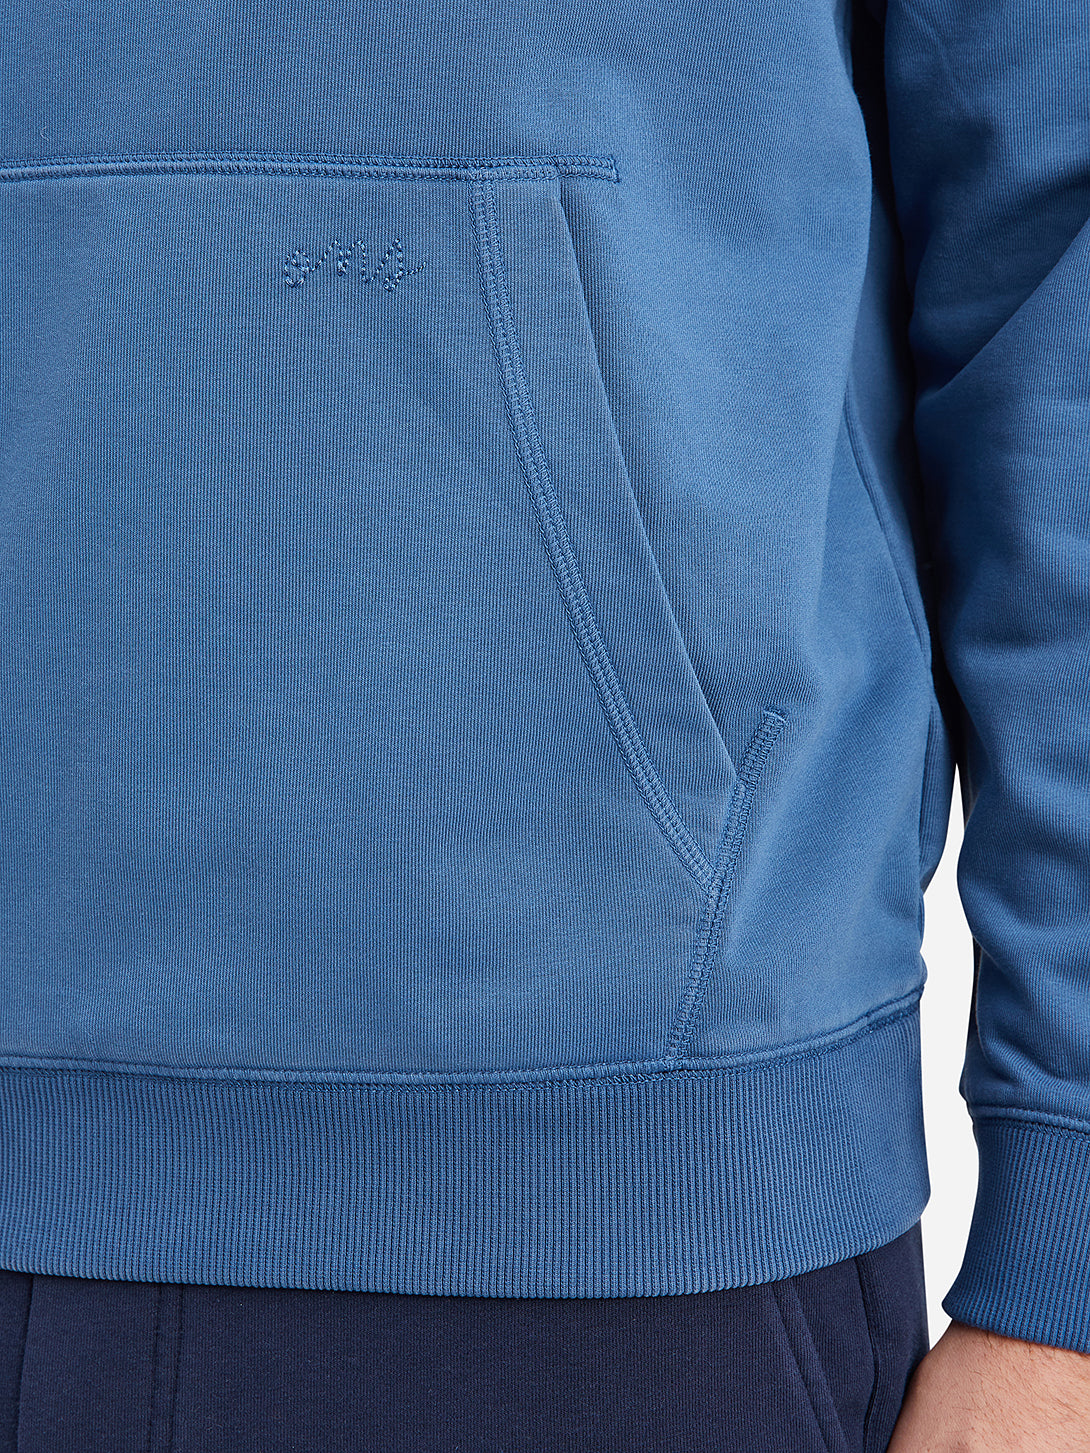 ONS Clothing Men's Harper Hoodie in Ensign Blue